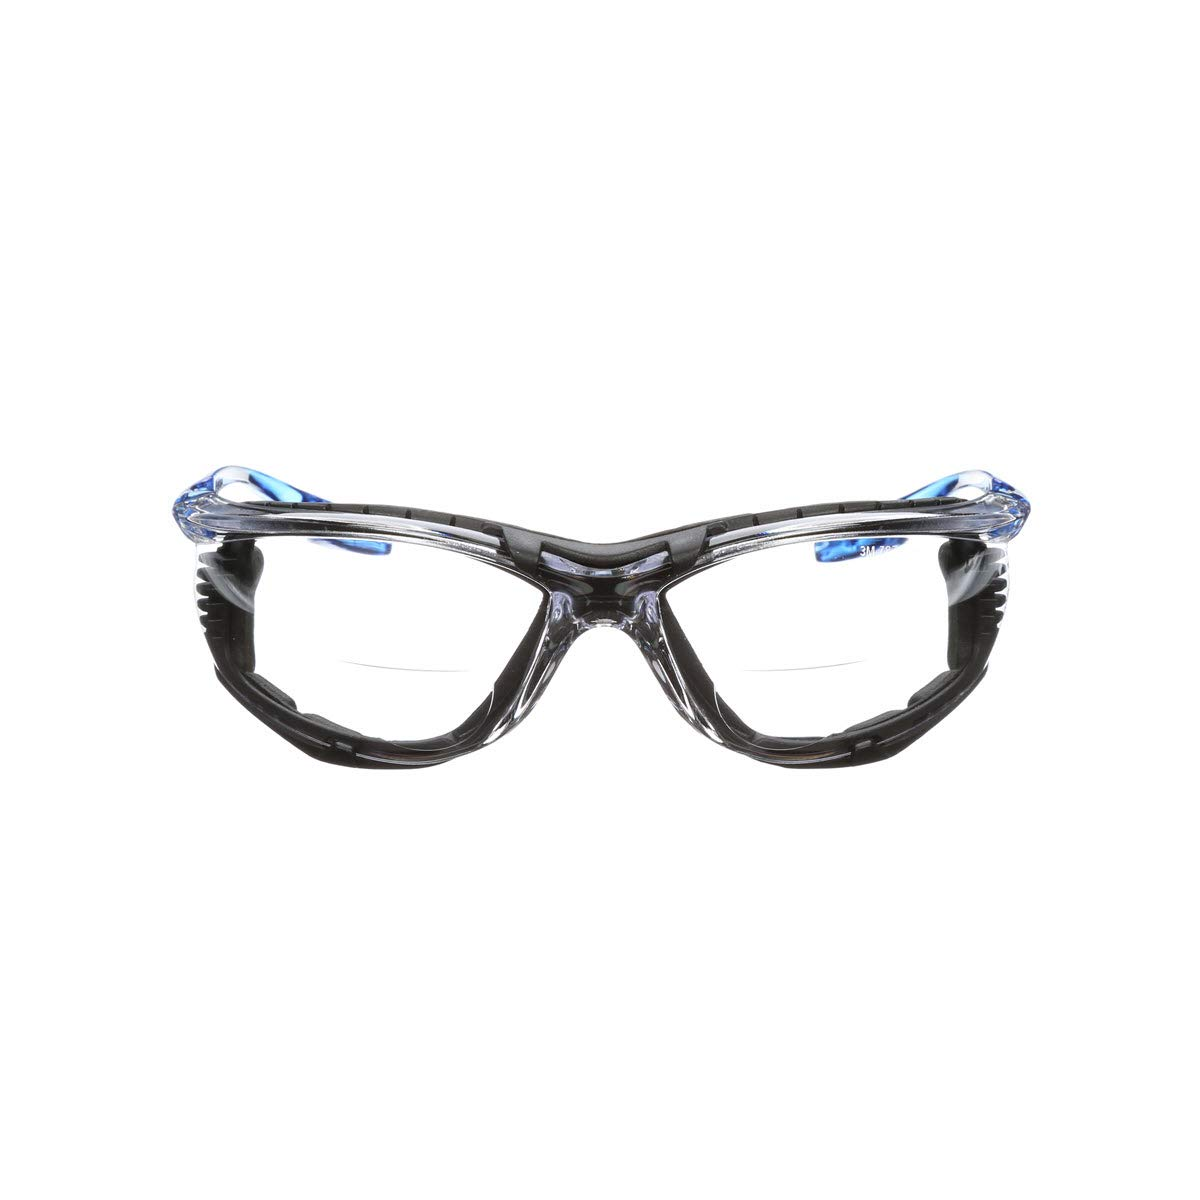 3M VC225AF Virtua CCS 2.5 Diopter Safety Glasses Clear Polycarbonate Anti-Fog and Foam Gasket Attachment